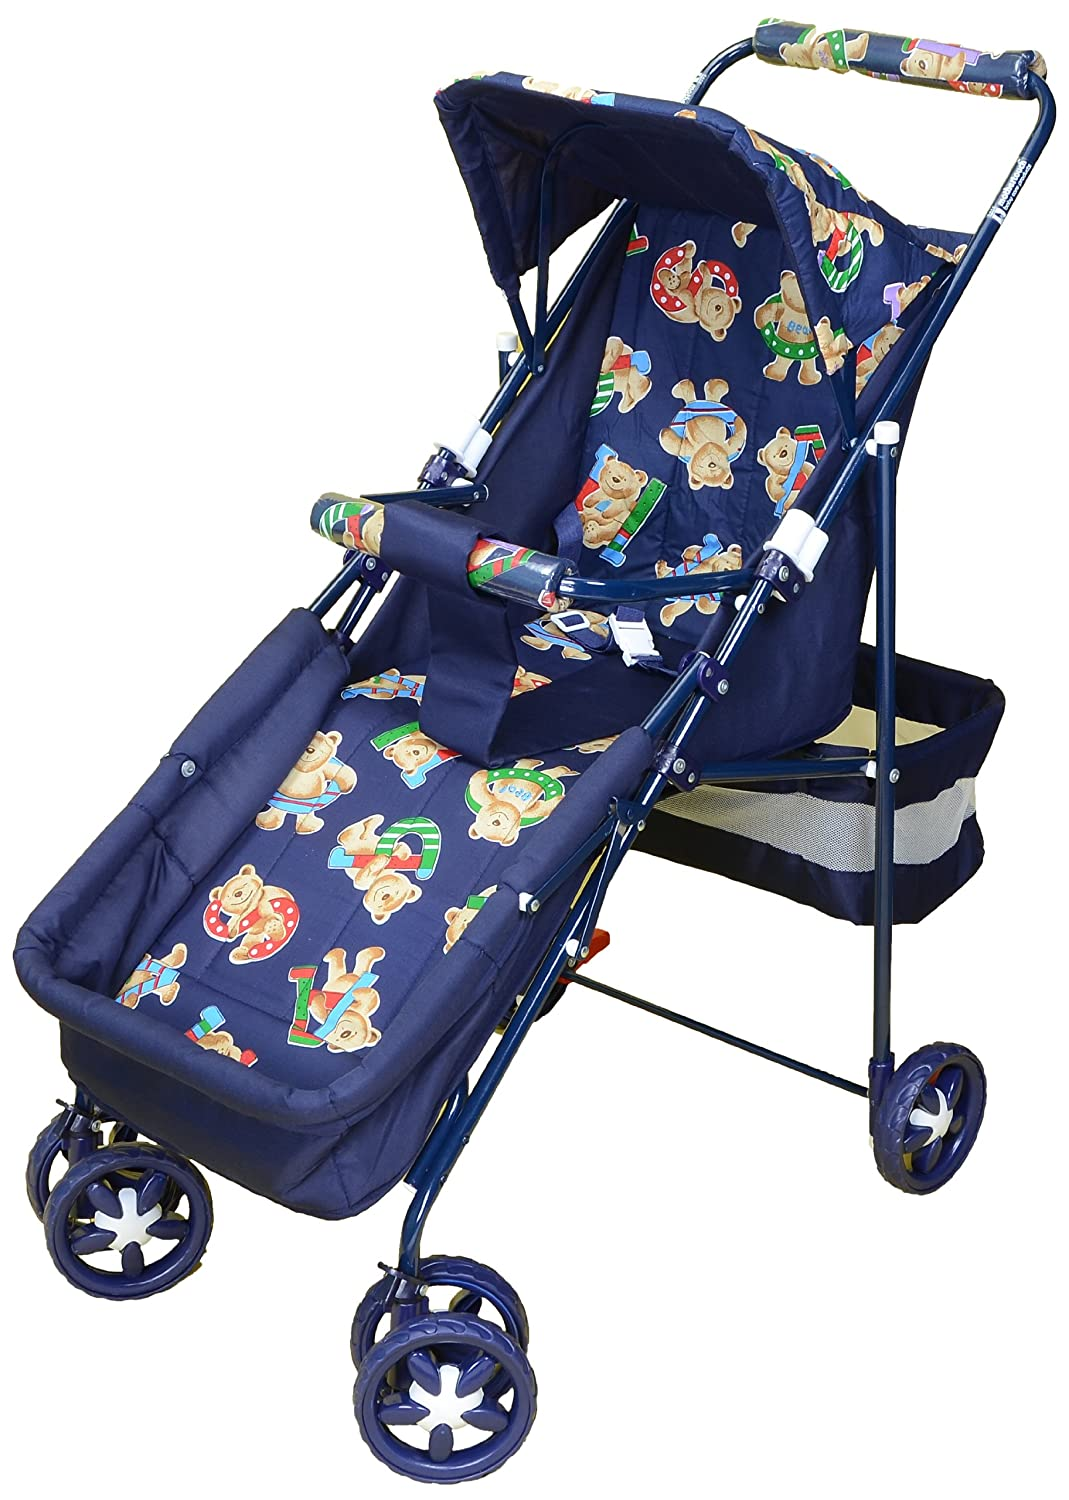 Pram Dx (Navy blue)